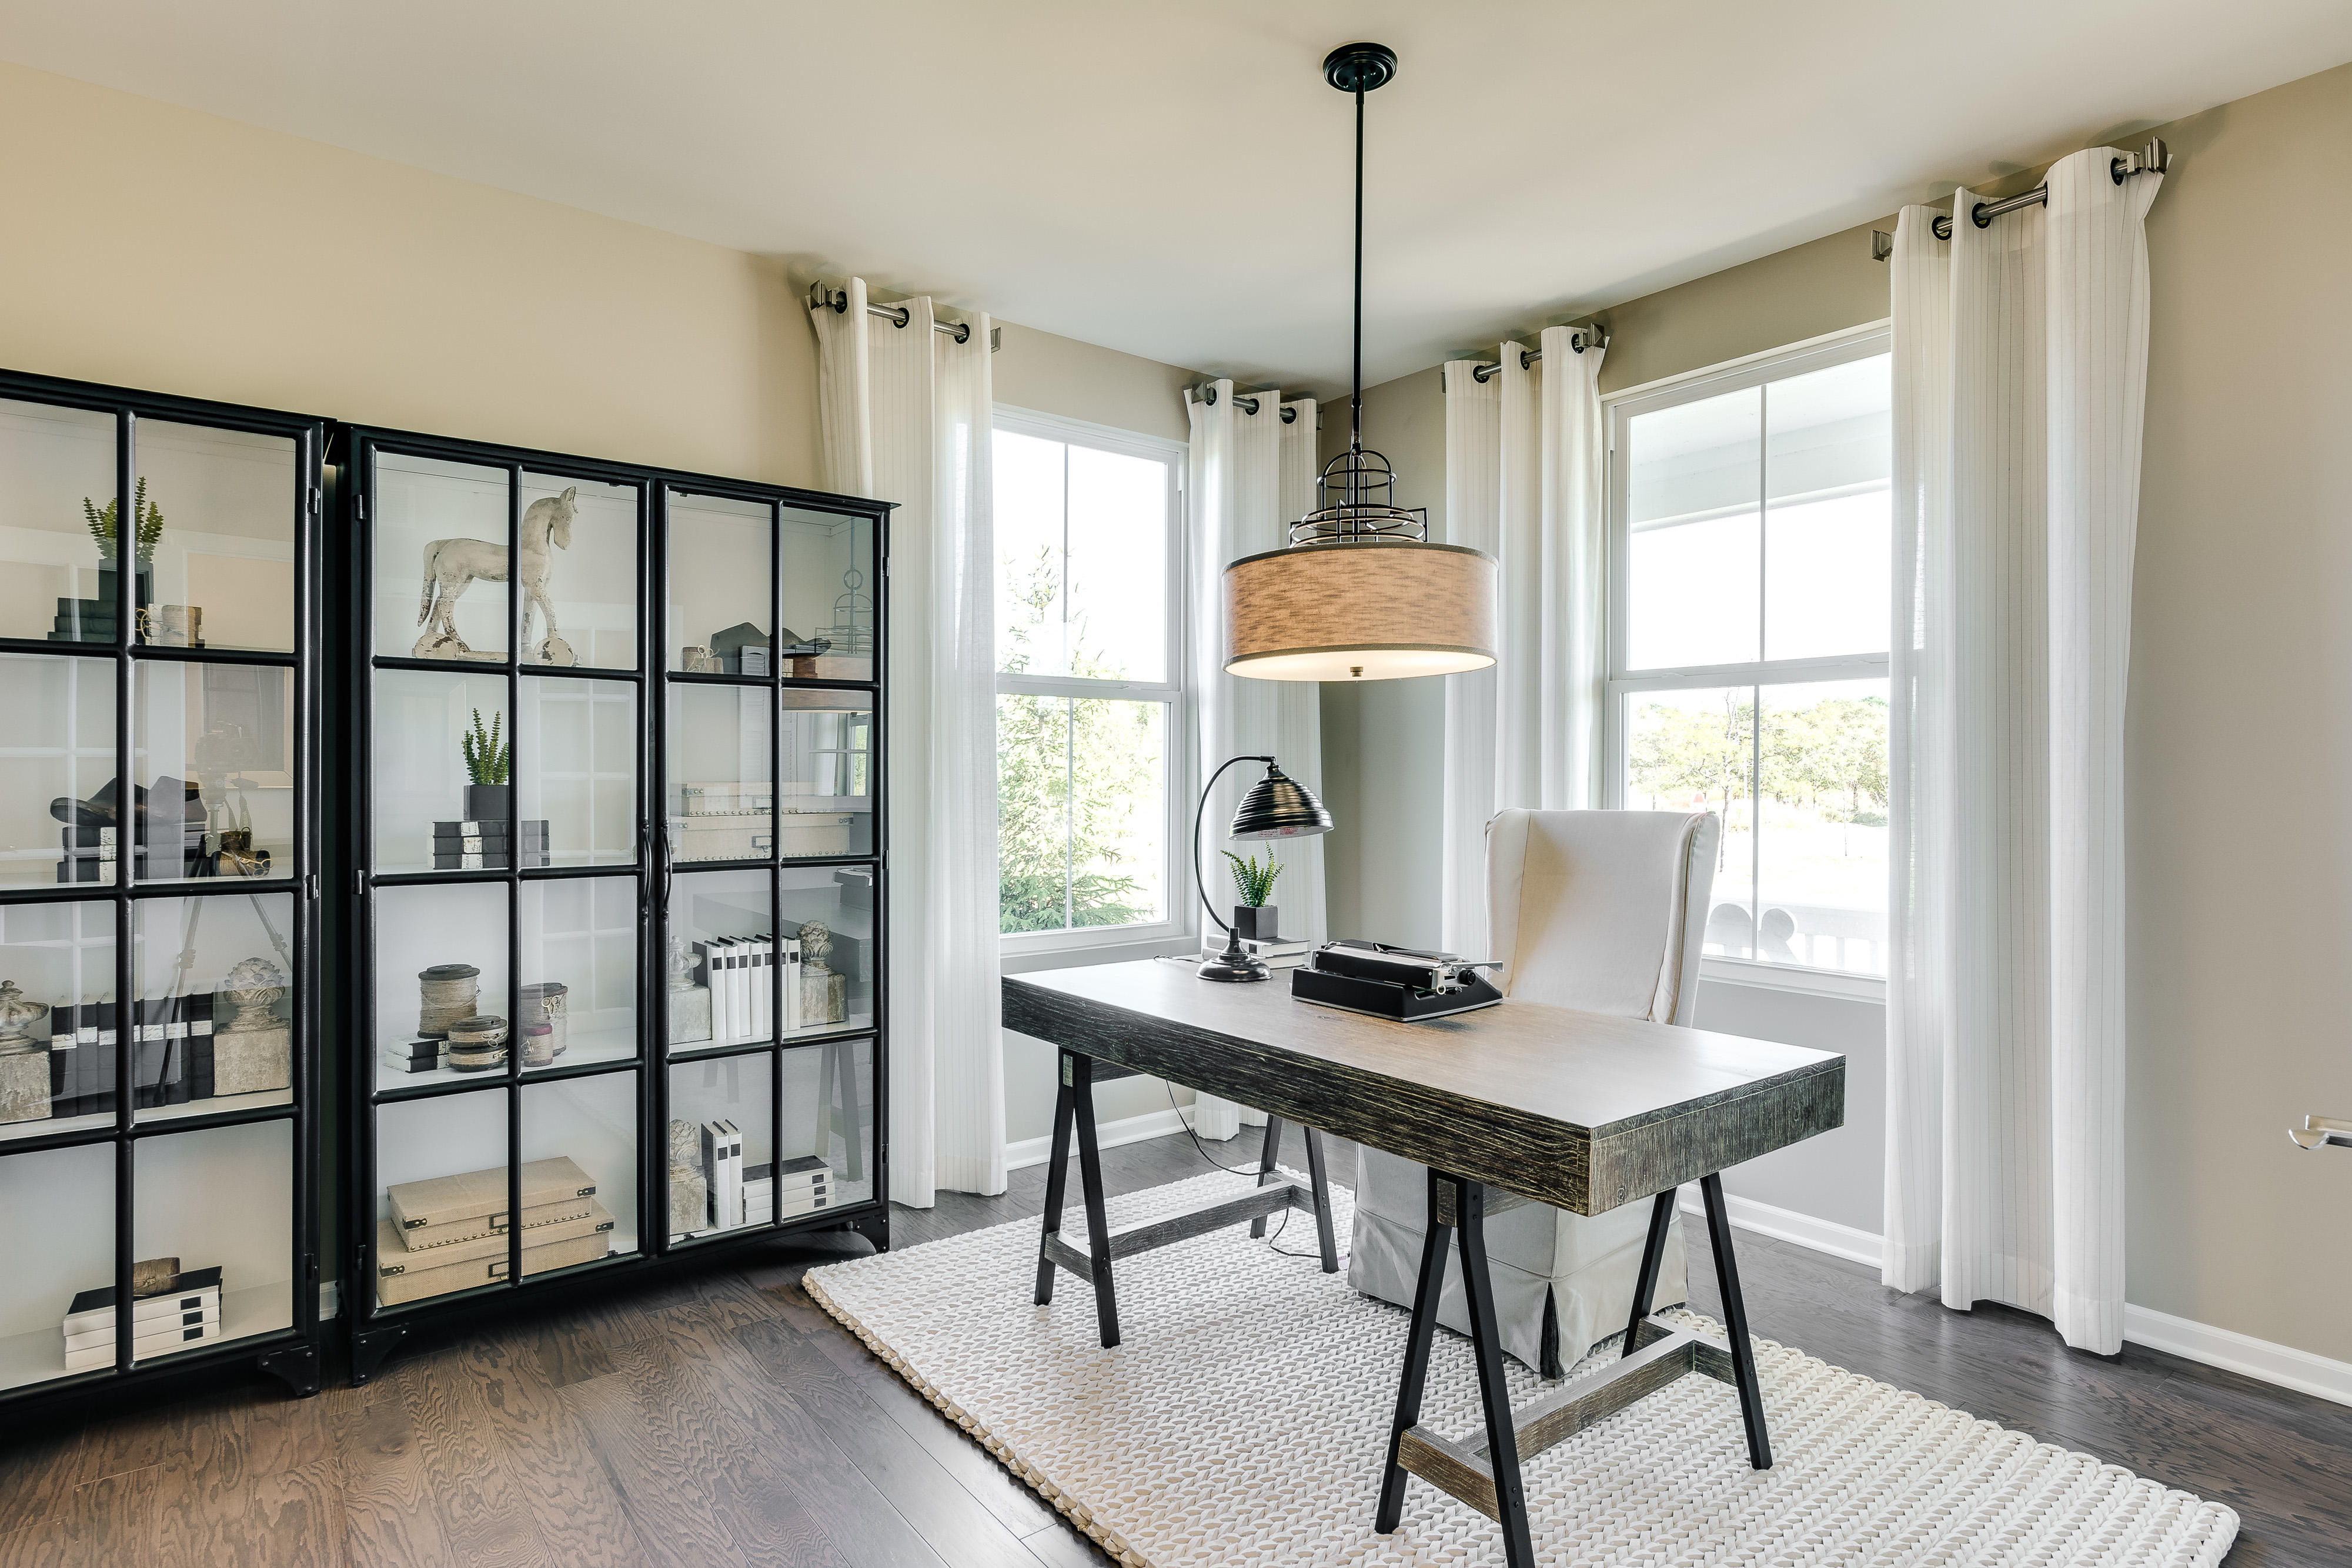 Finley Park by Pulte Homes image 4